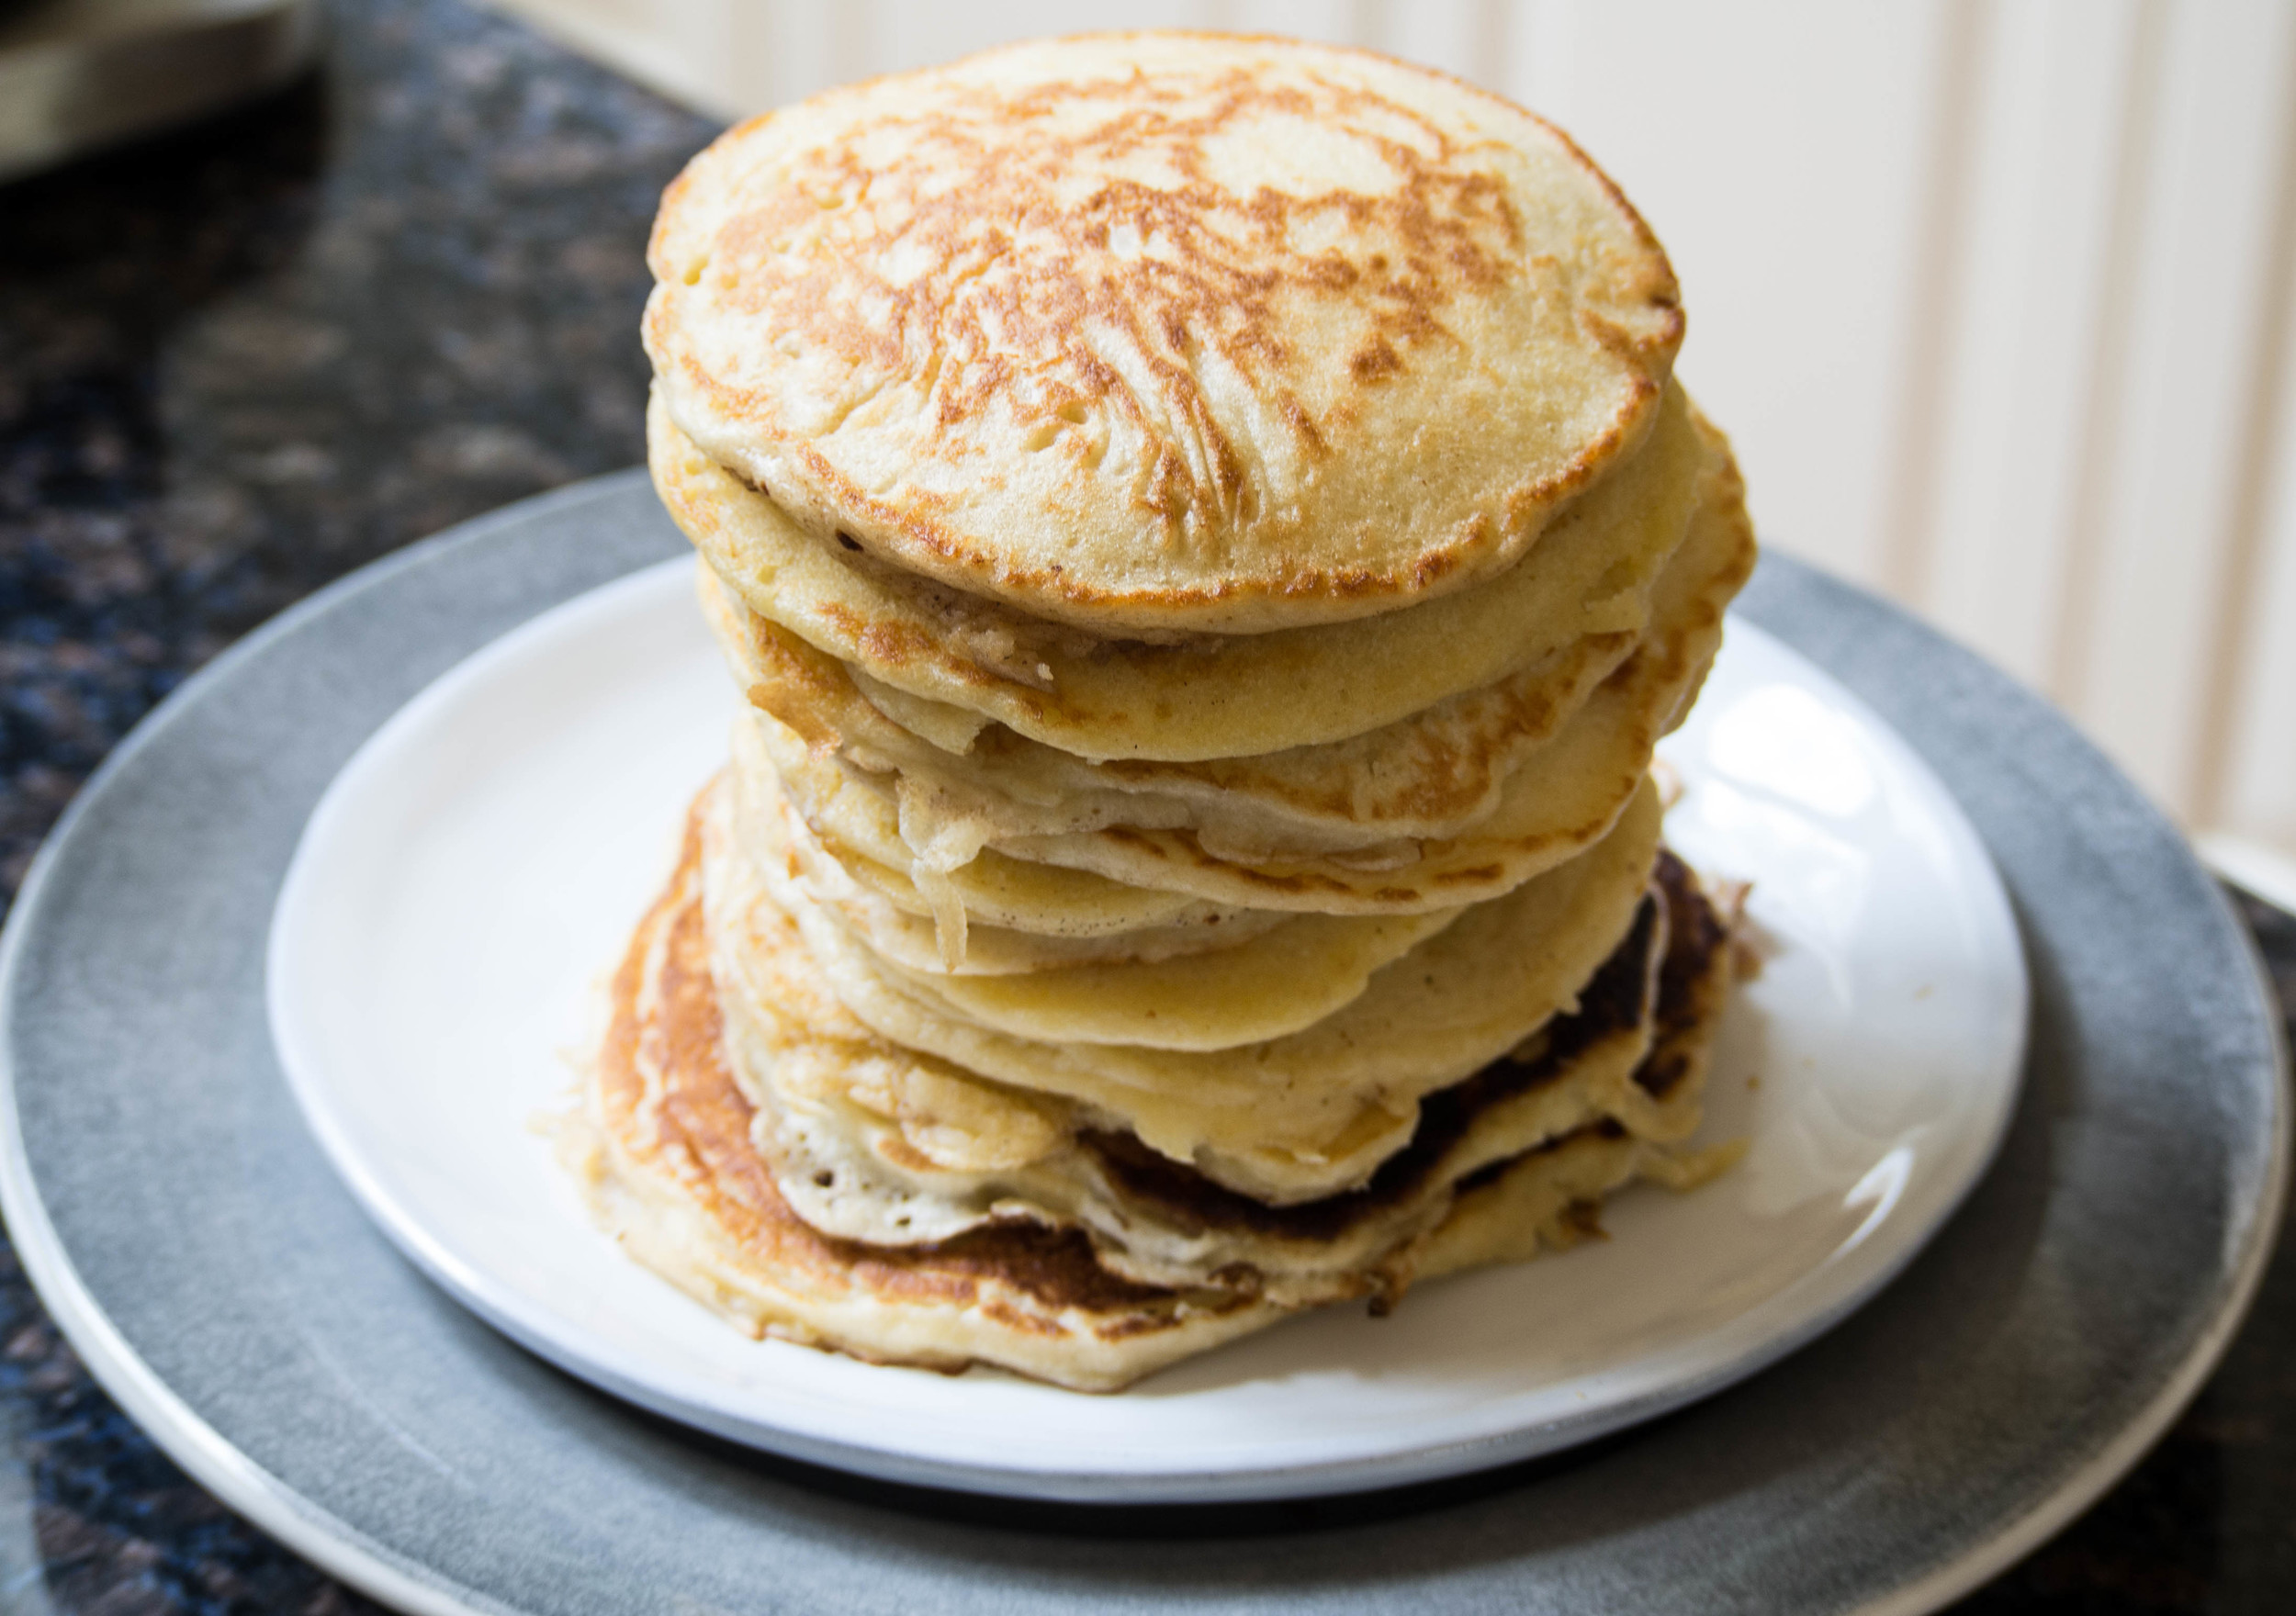 Passionfruit Pancakes 2 - Kulinary Adventures of Kath